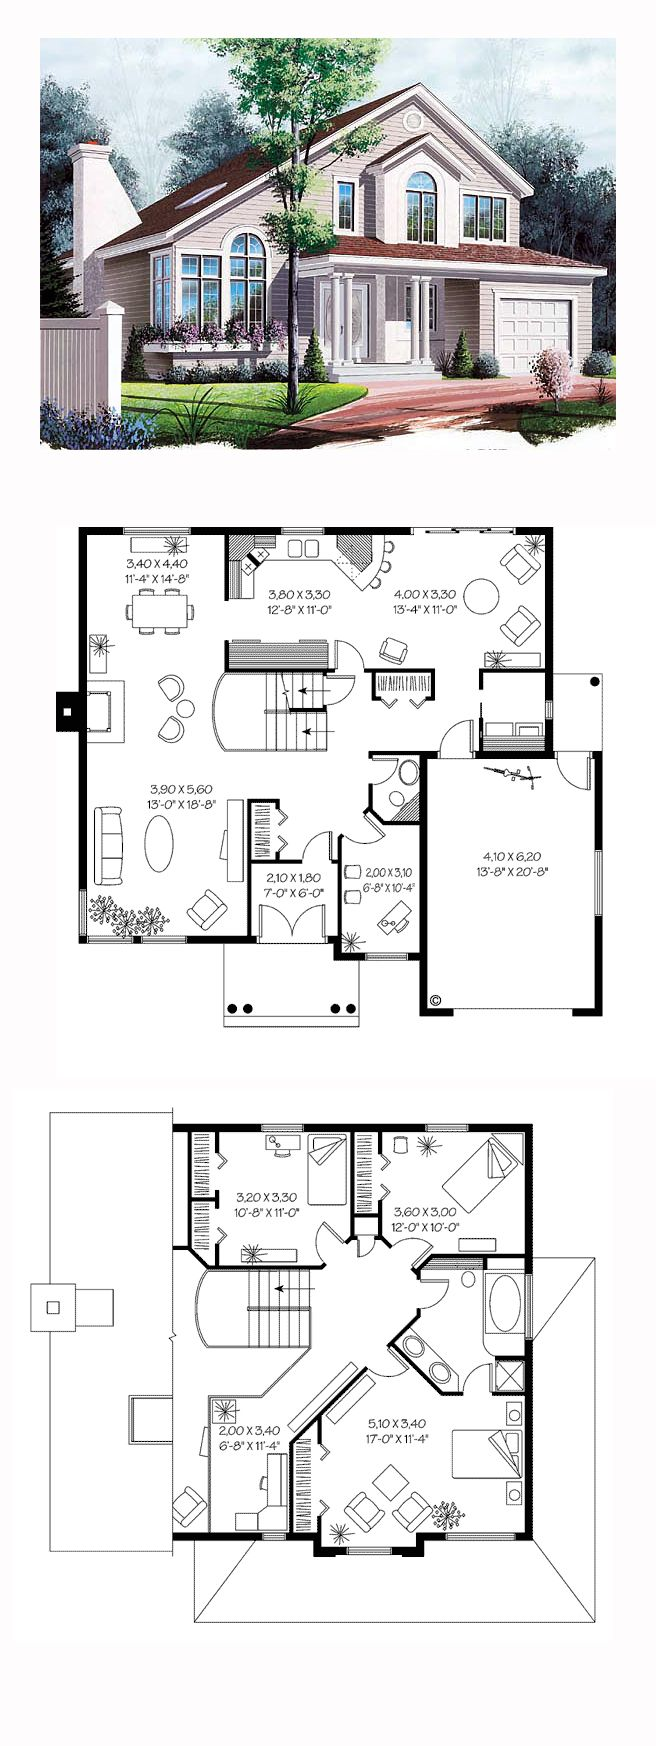 17 best images about saltbox house plans on pinterest for Saltbox design